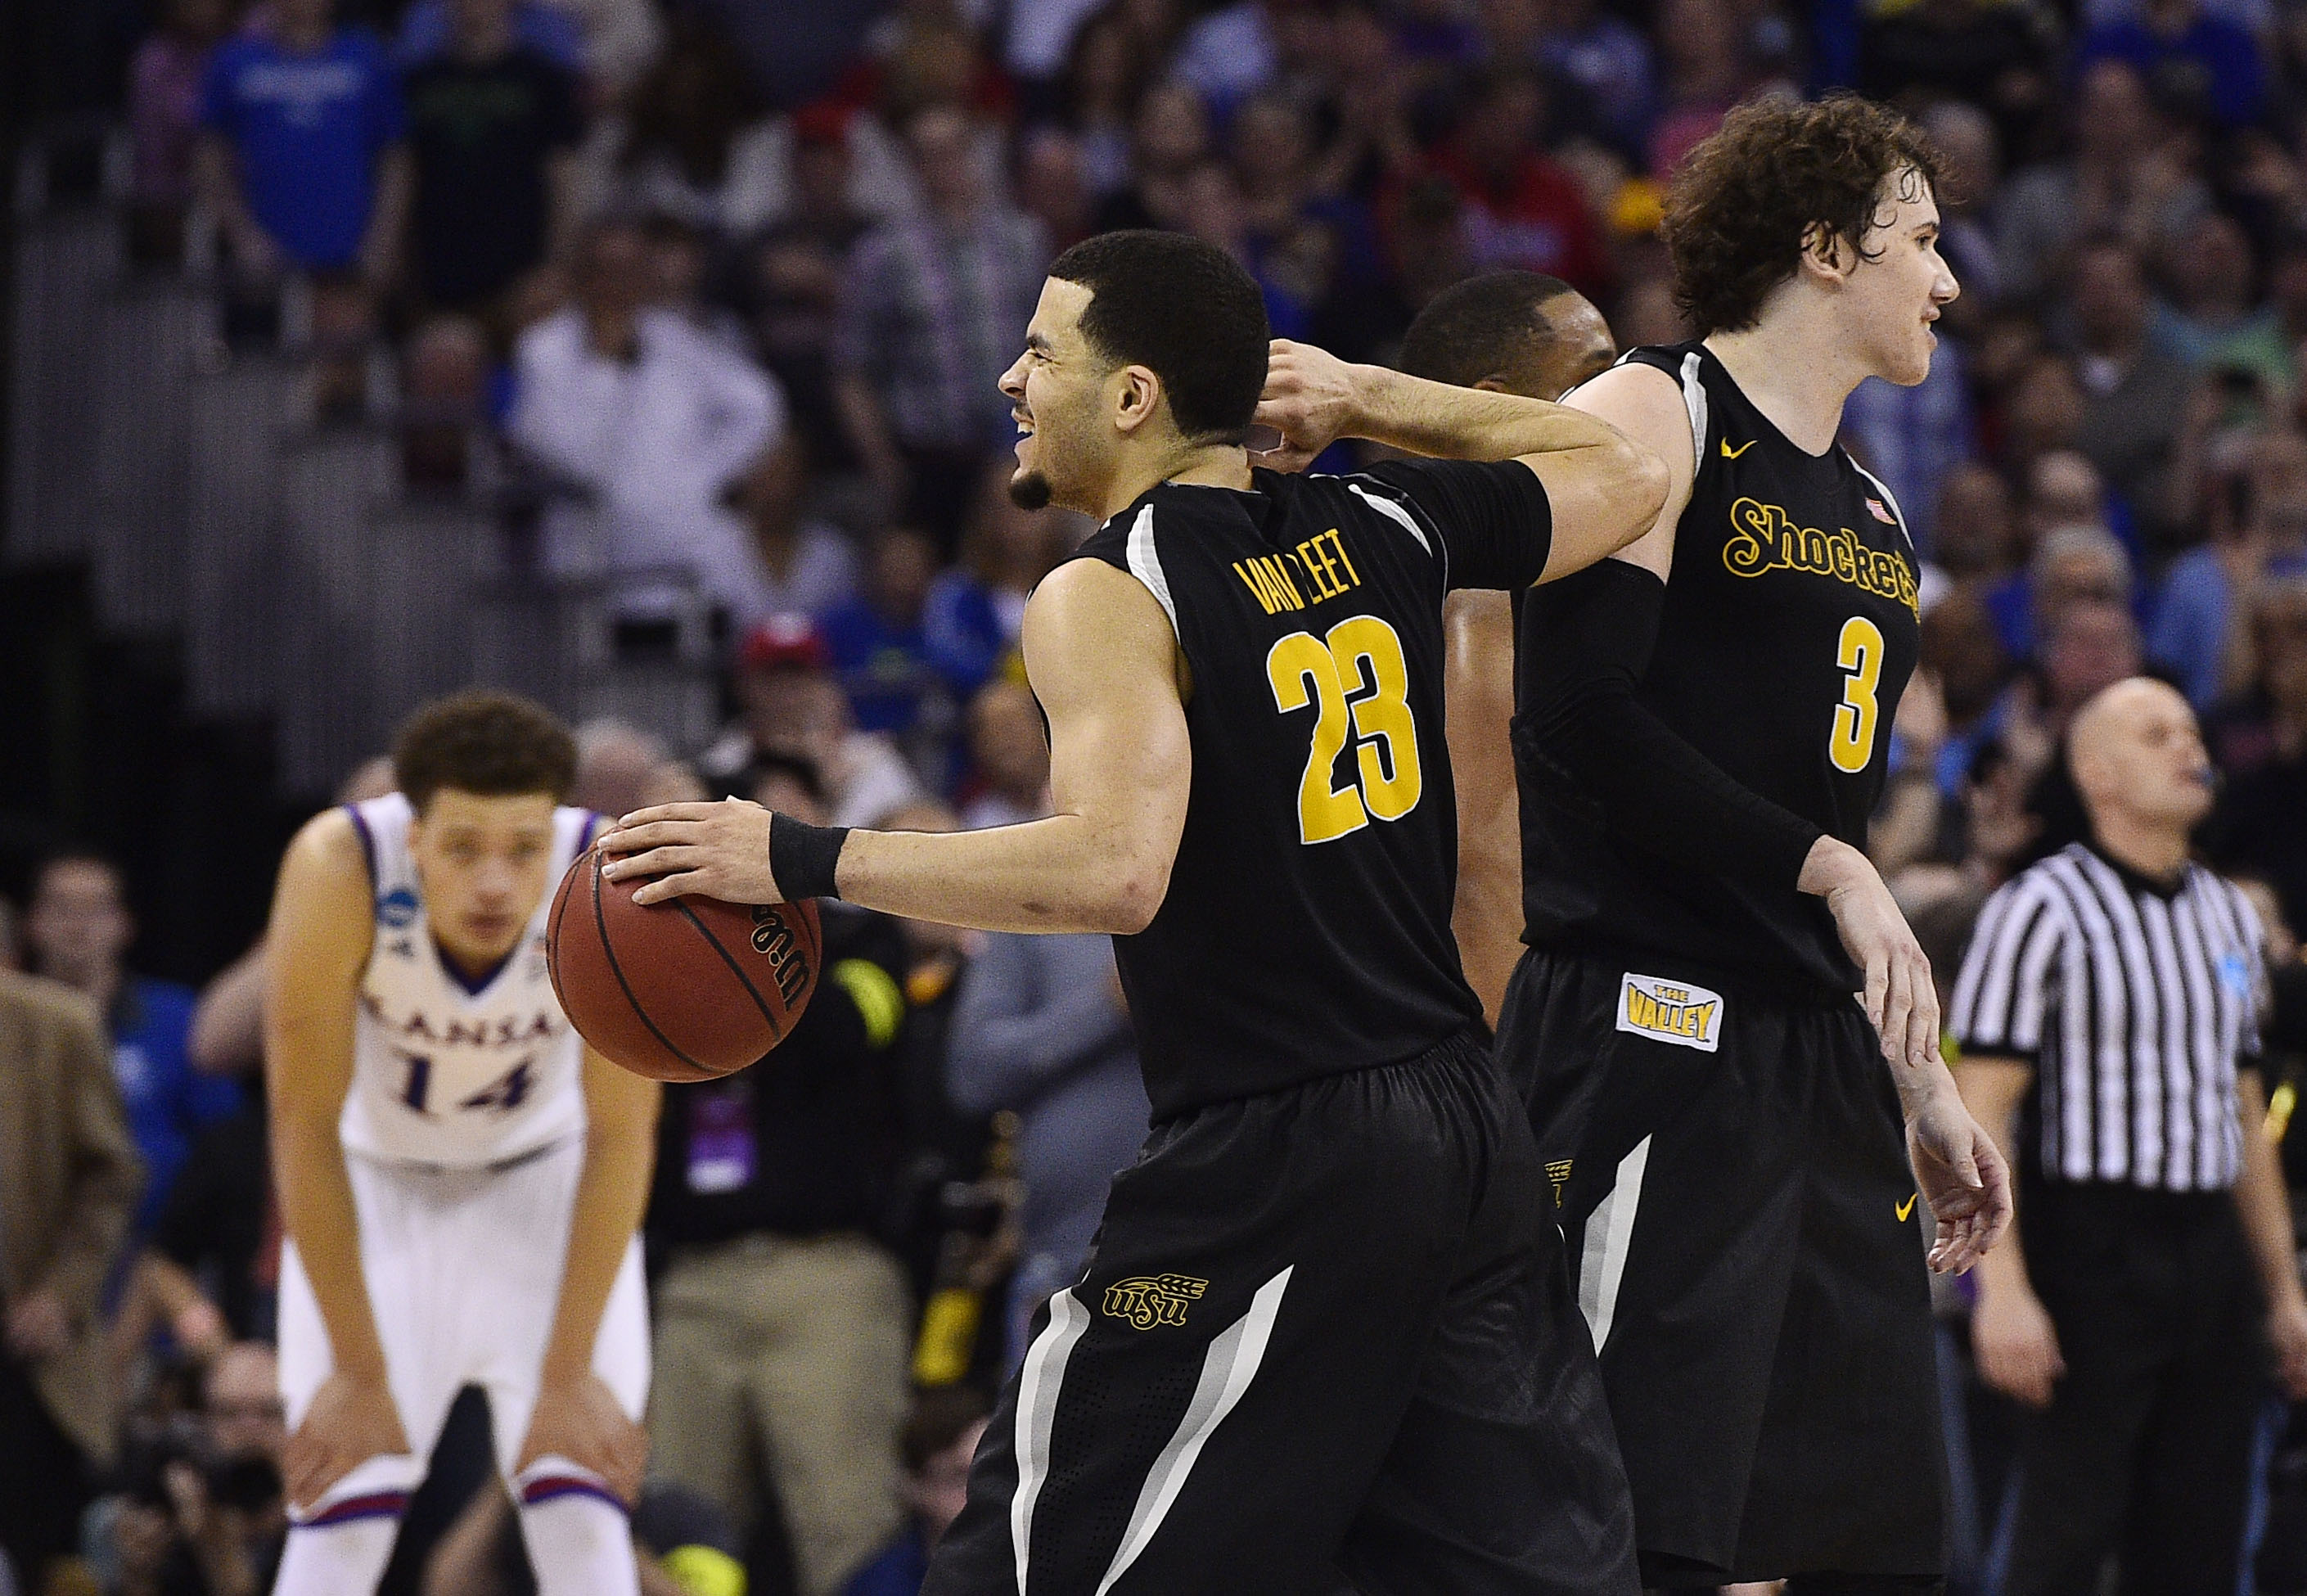 March Madness Picks Against The Spread 2018 Sweet 16: March Madness 2015: Sweet 16 Betting Lines, Over/Unders